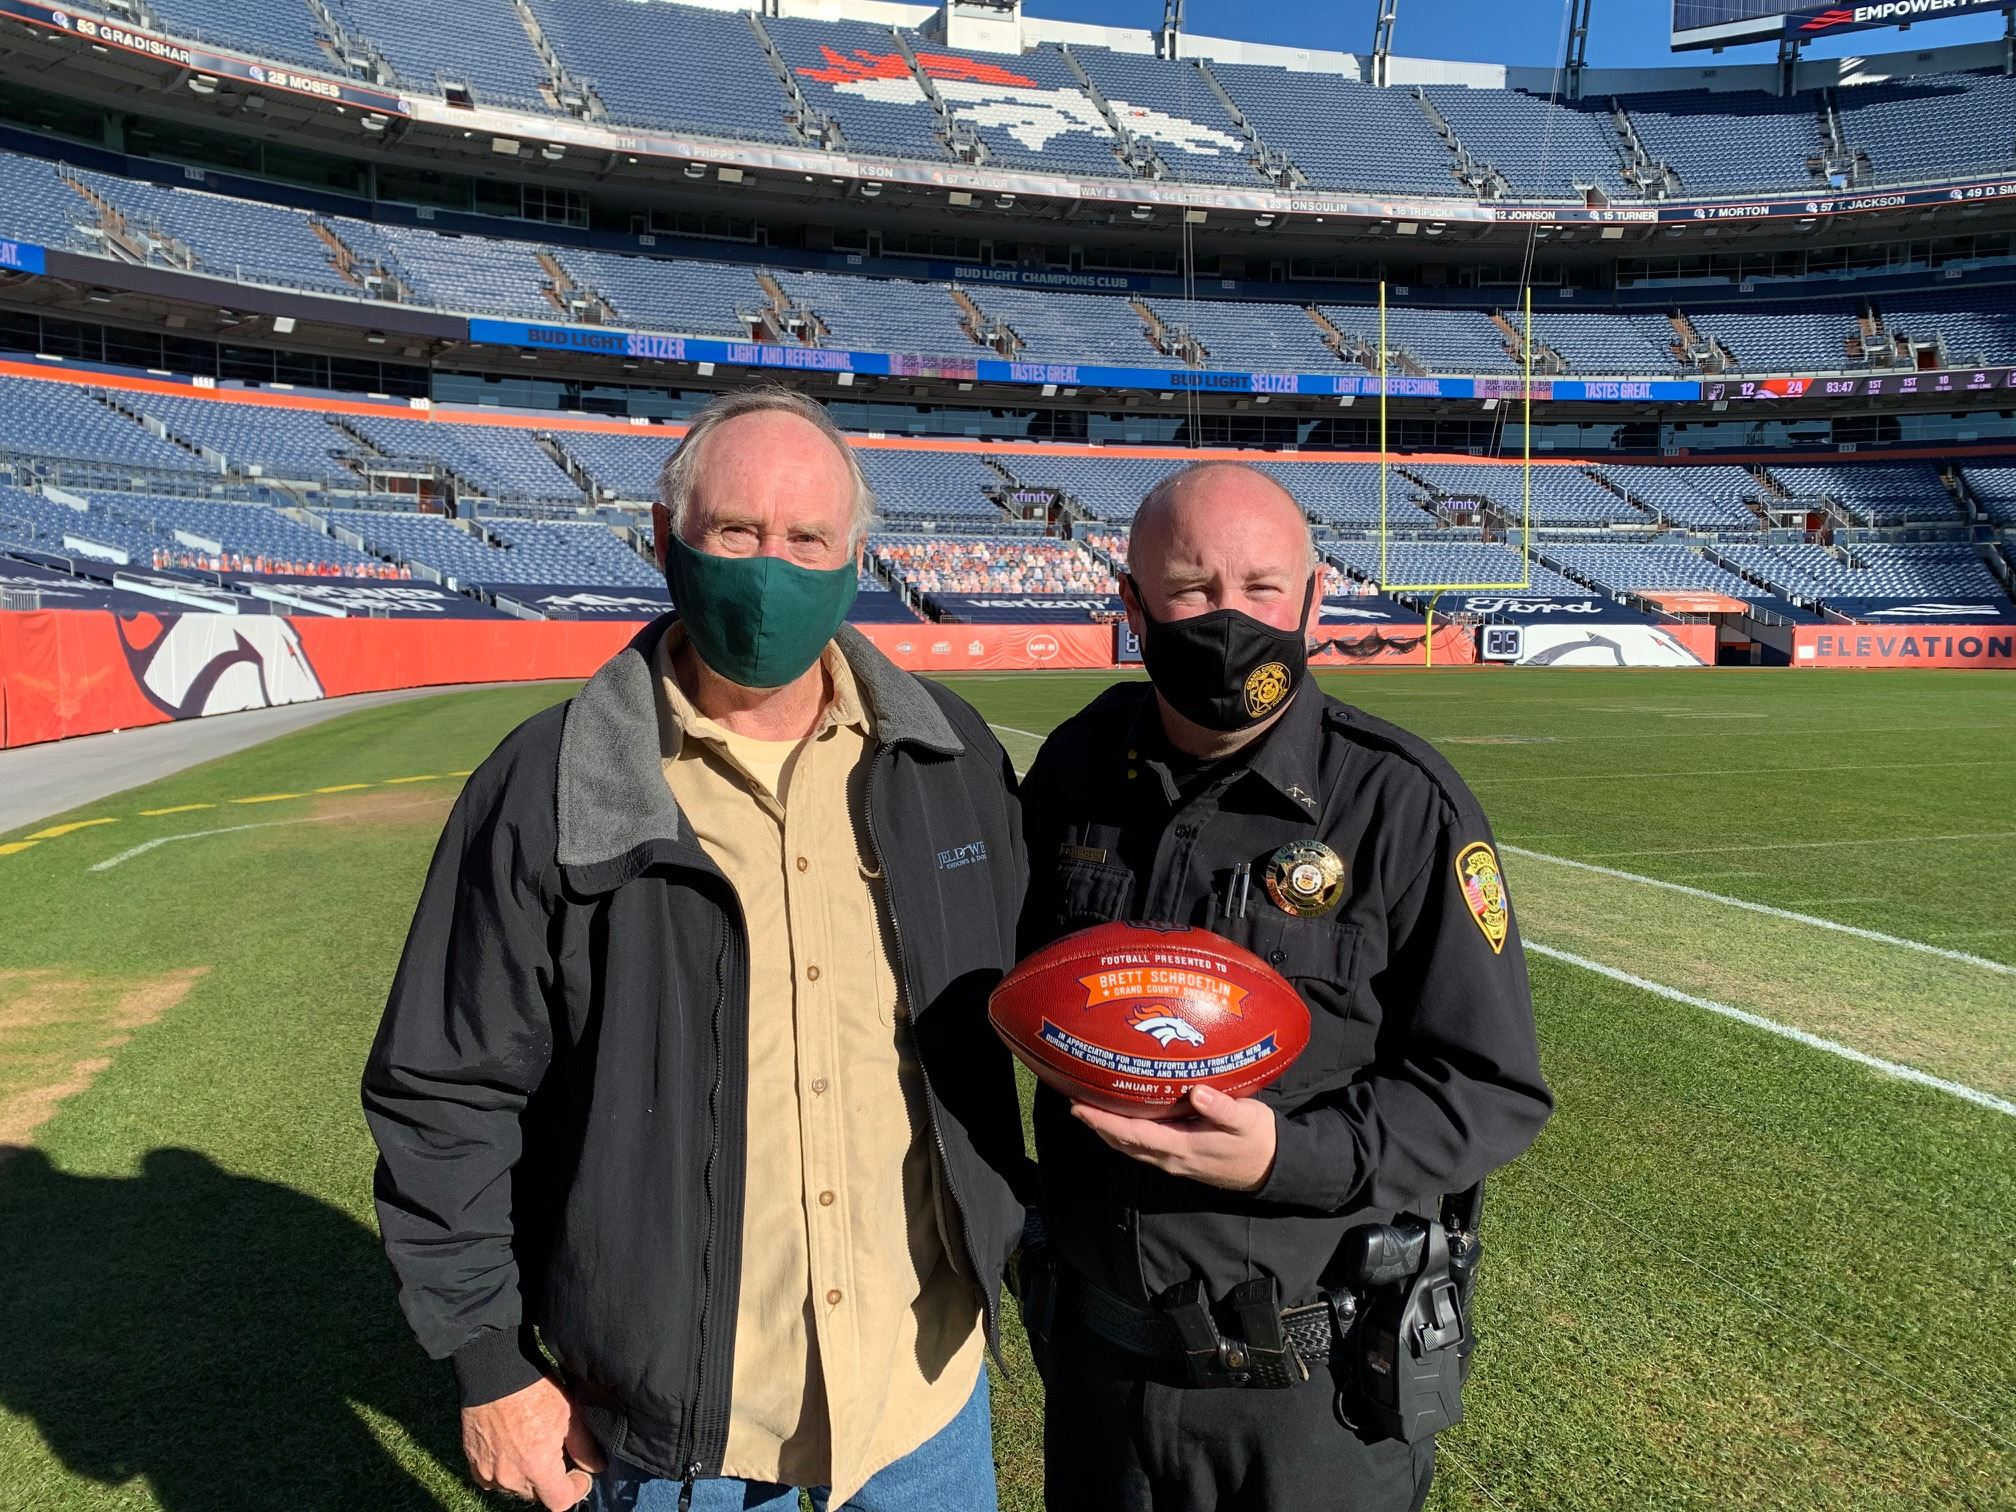 Grand County Sheriff Schroetlin with his Father Dave Schroetlin at Empower Field at Mile High